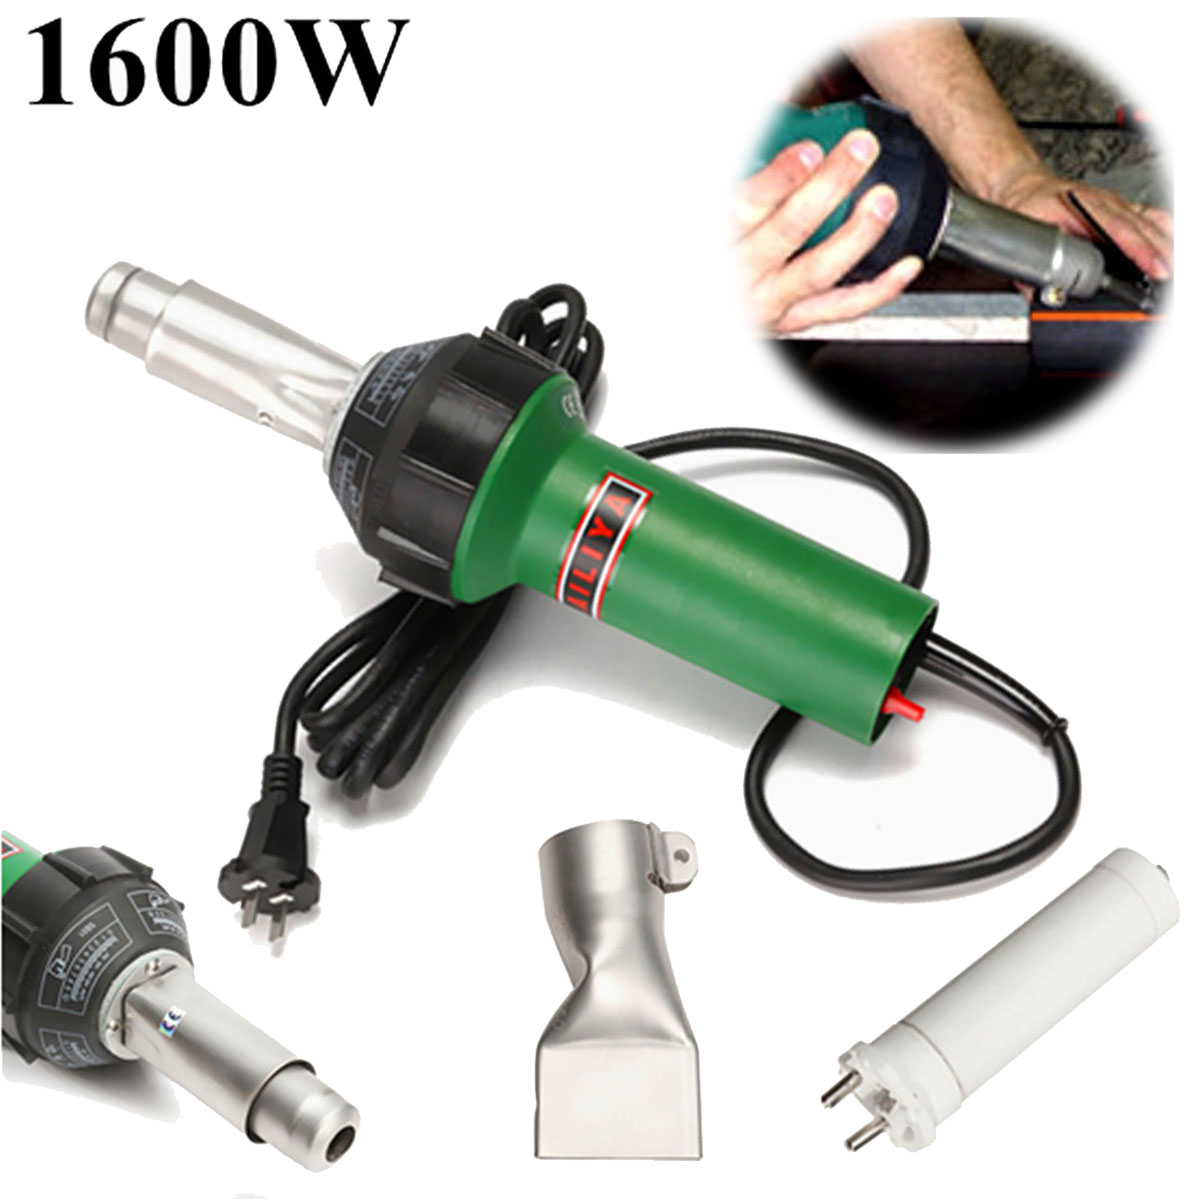 New AC 220V 1600W 50/60Hz Hot Air Torch Plastic Welding-Gun For Welder + Flat Nose Wholesale Price best price miller mig spool gun push pull feeder aluminum welding torch without cable hot dc 24v motor wire 0 8 0 9mm